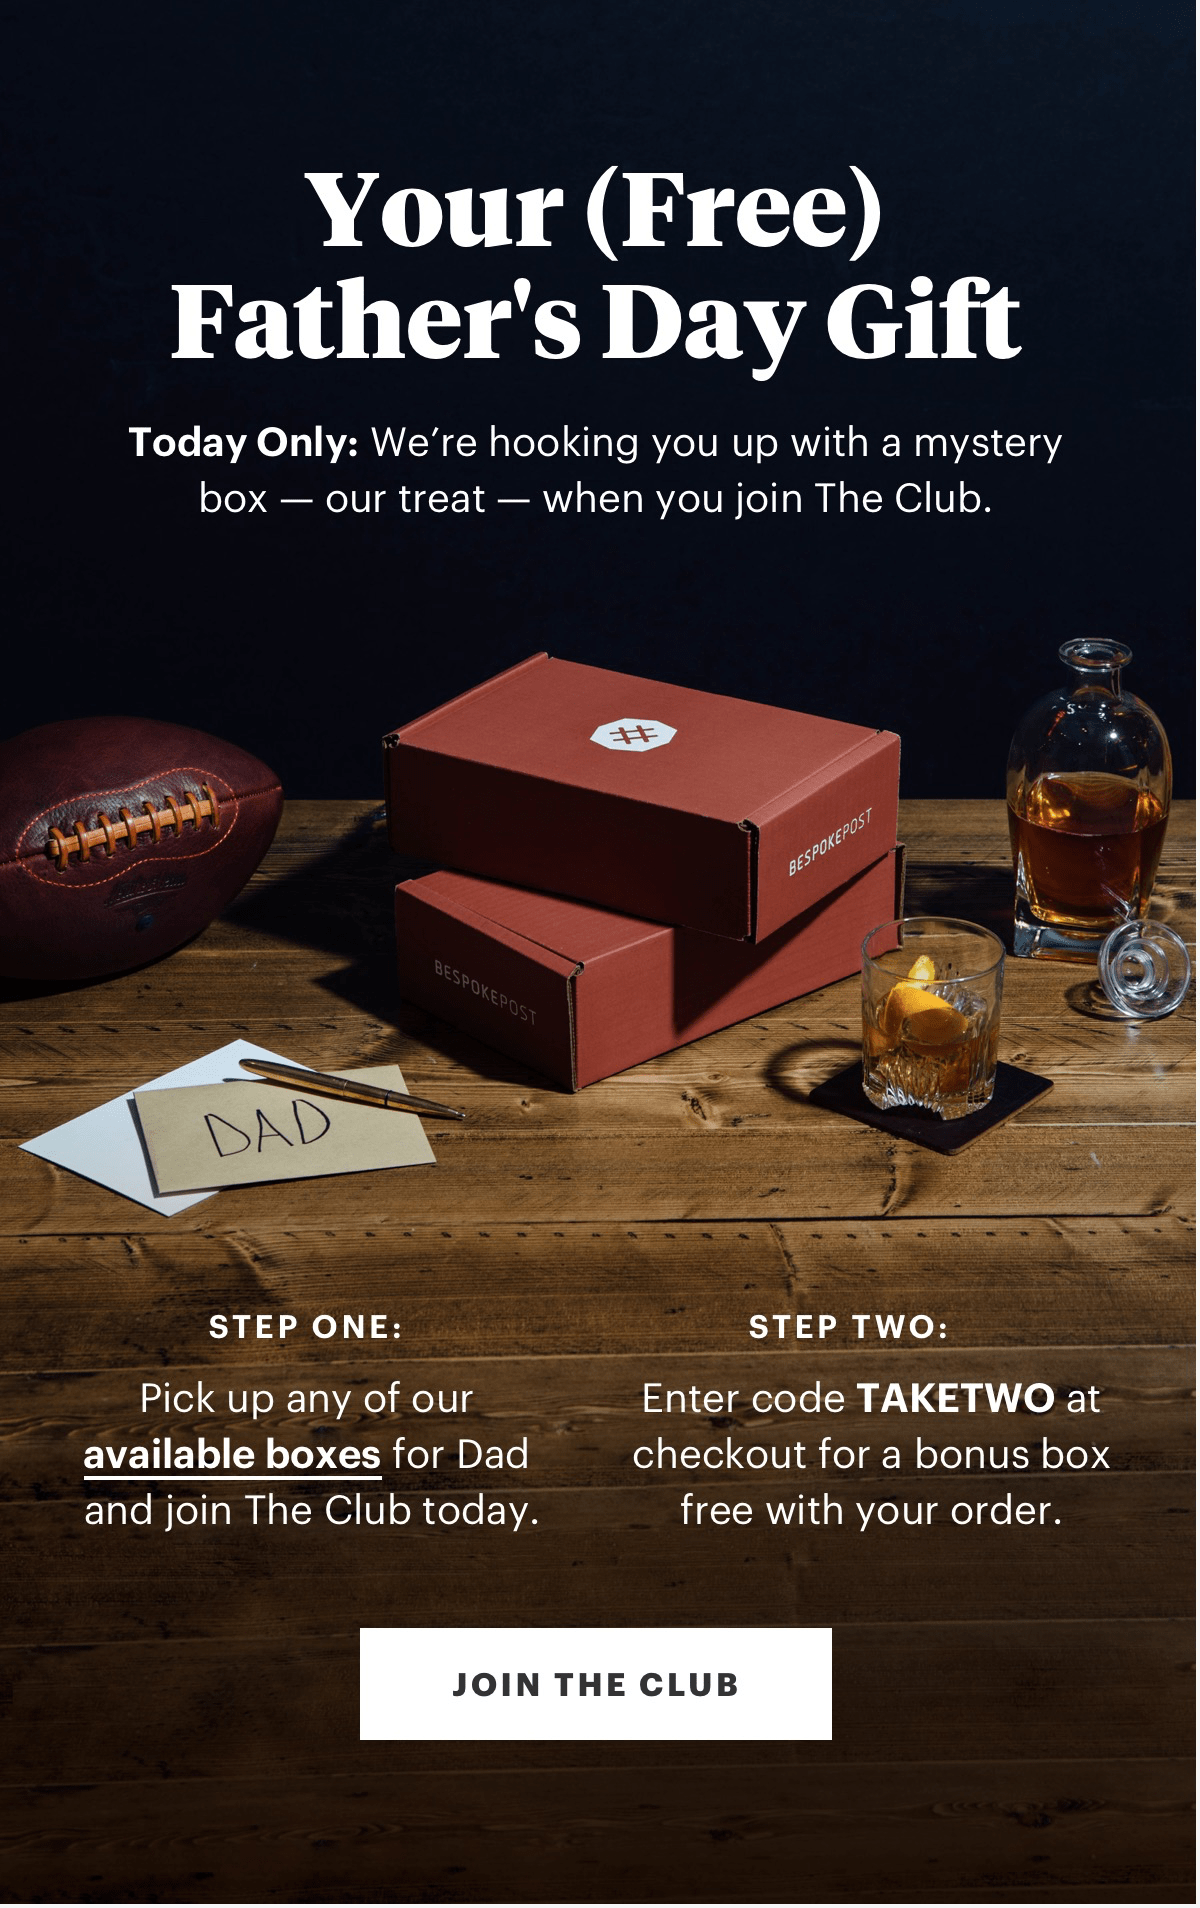 Bespoke Post FREE Bonus Box With First Box – Today Only!!